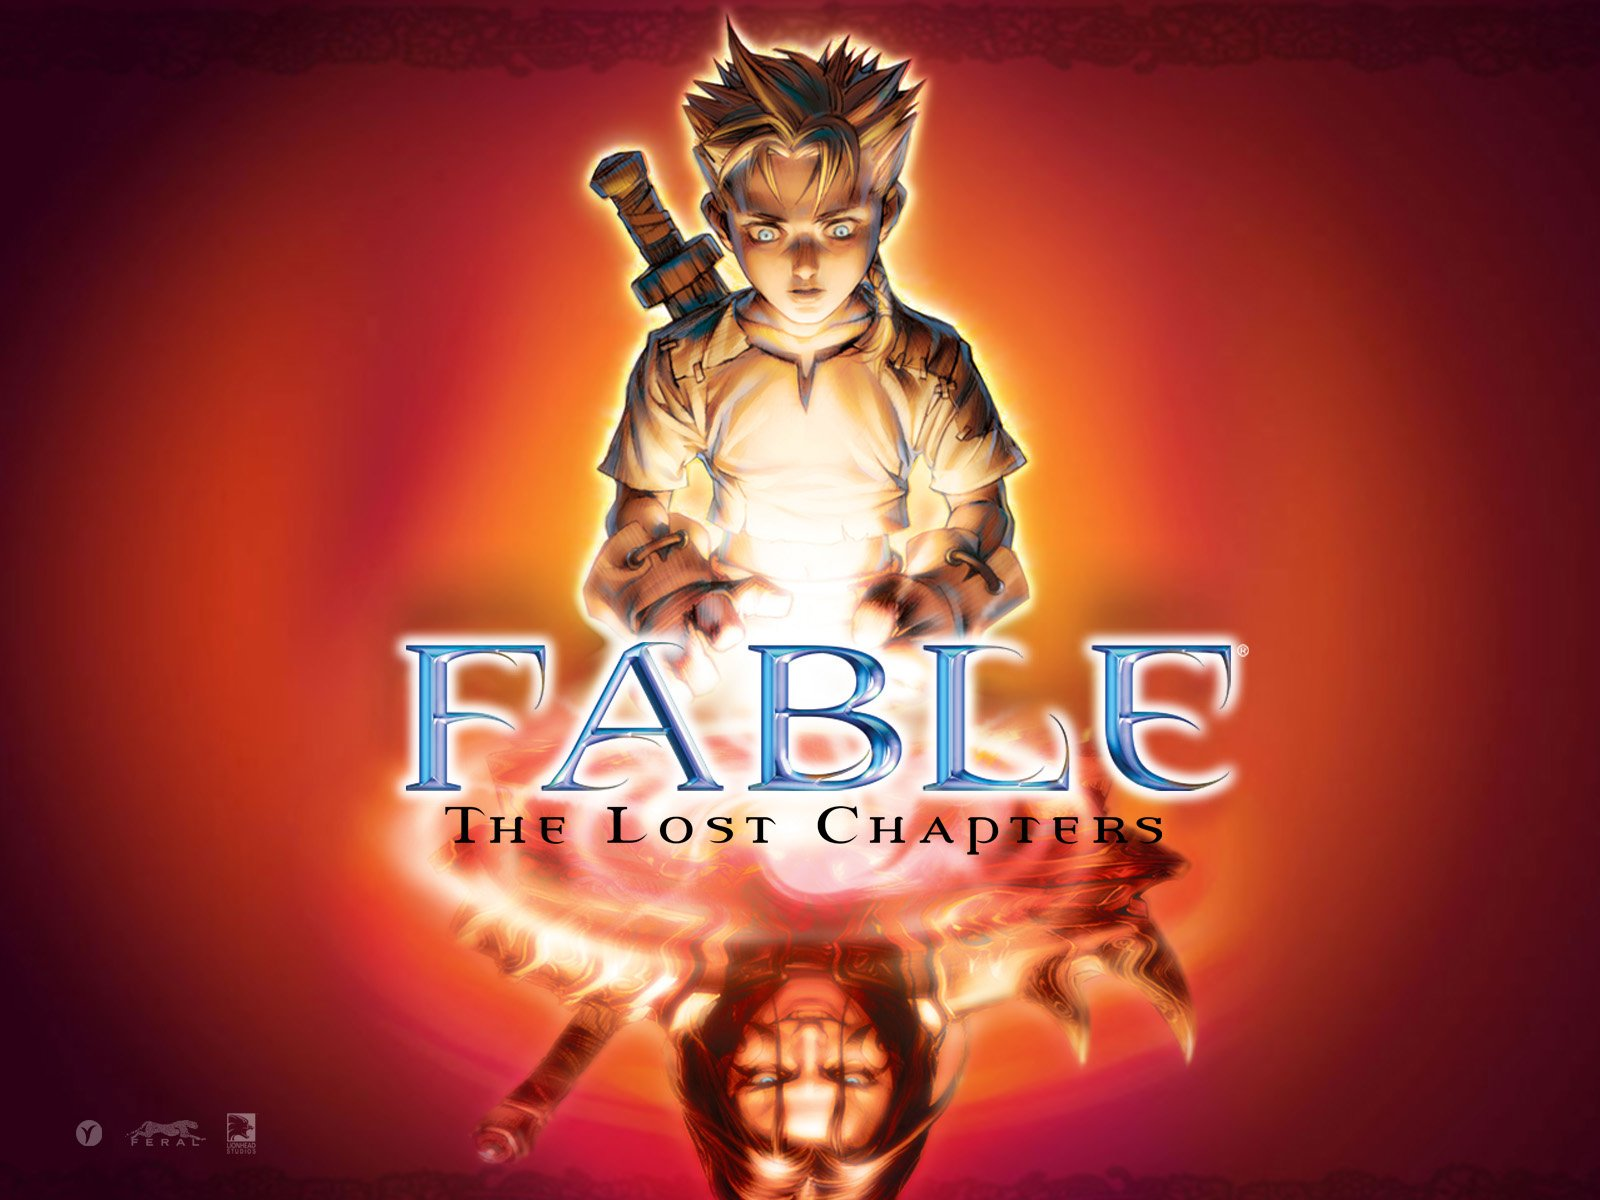 Fable the lost chapters porno adult videos